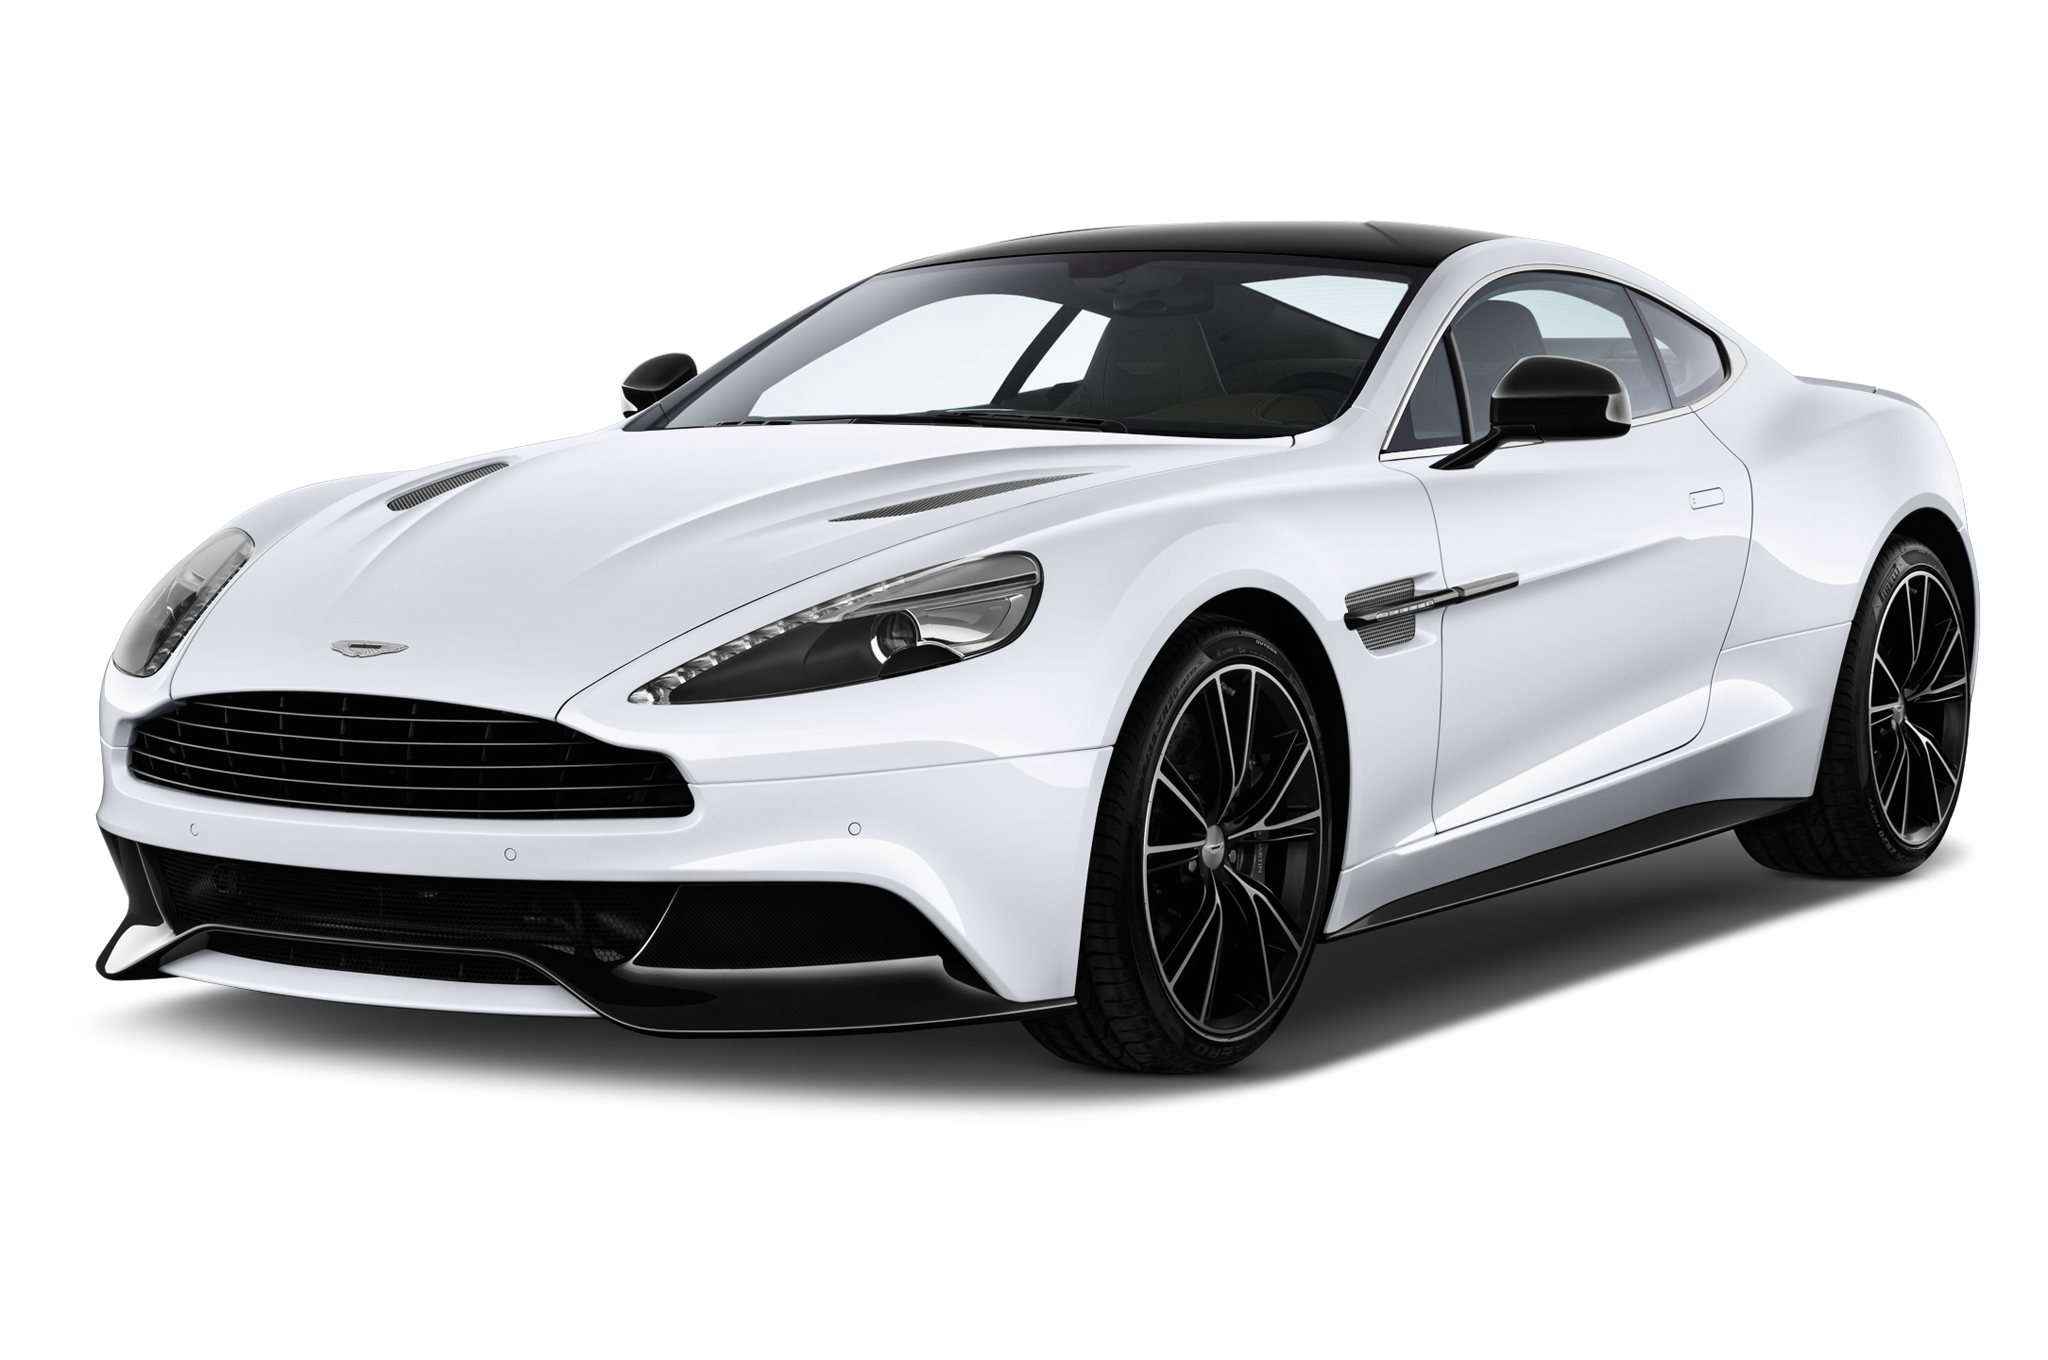 Aston Martin Car Service And Repair In Gurgaon Delhi Noida By Carpathy - Aston martin cars com